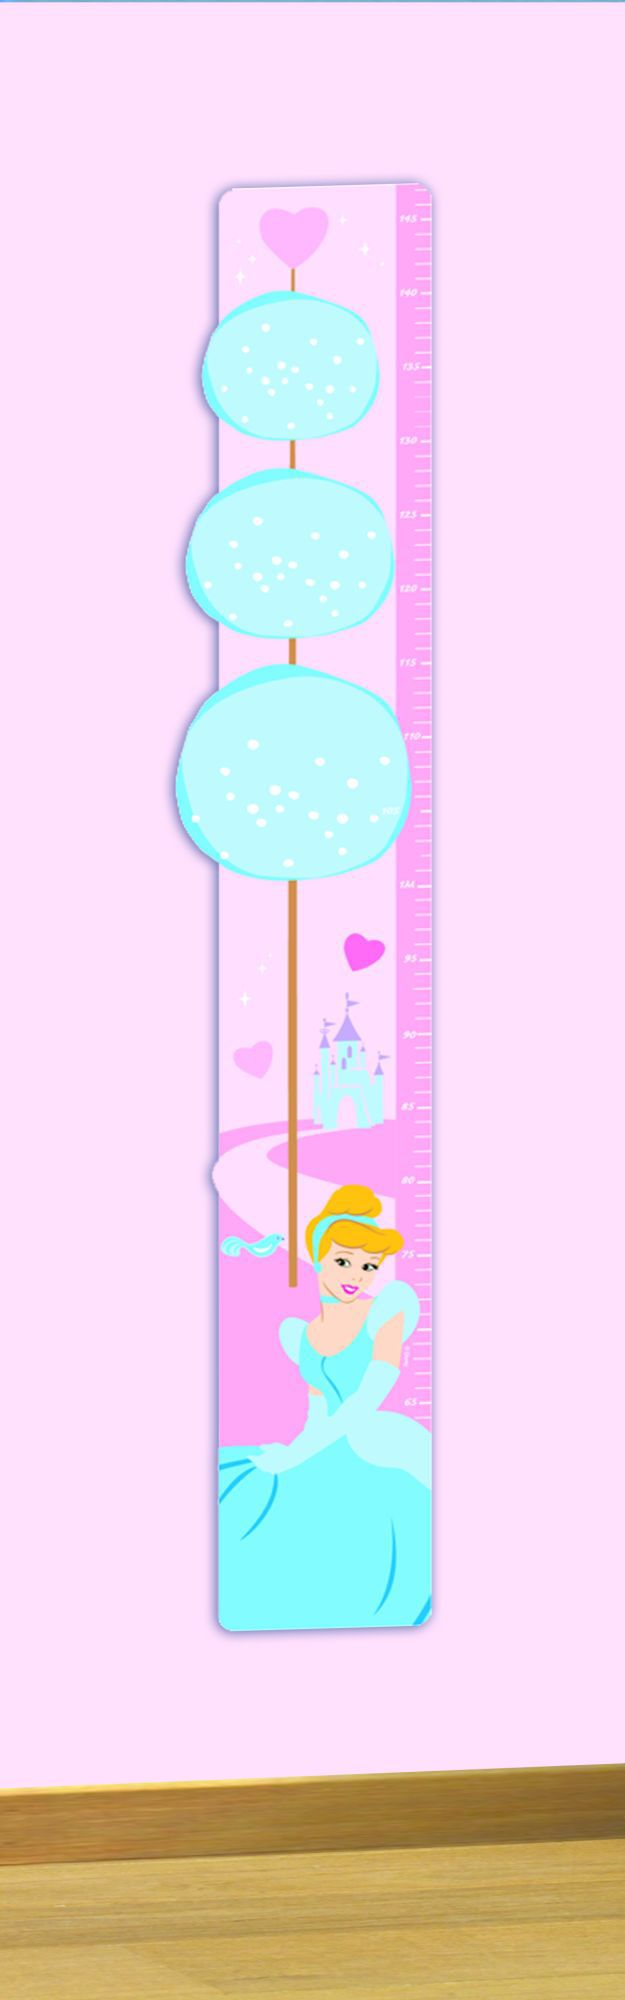 Princess Foam Growth Chart